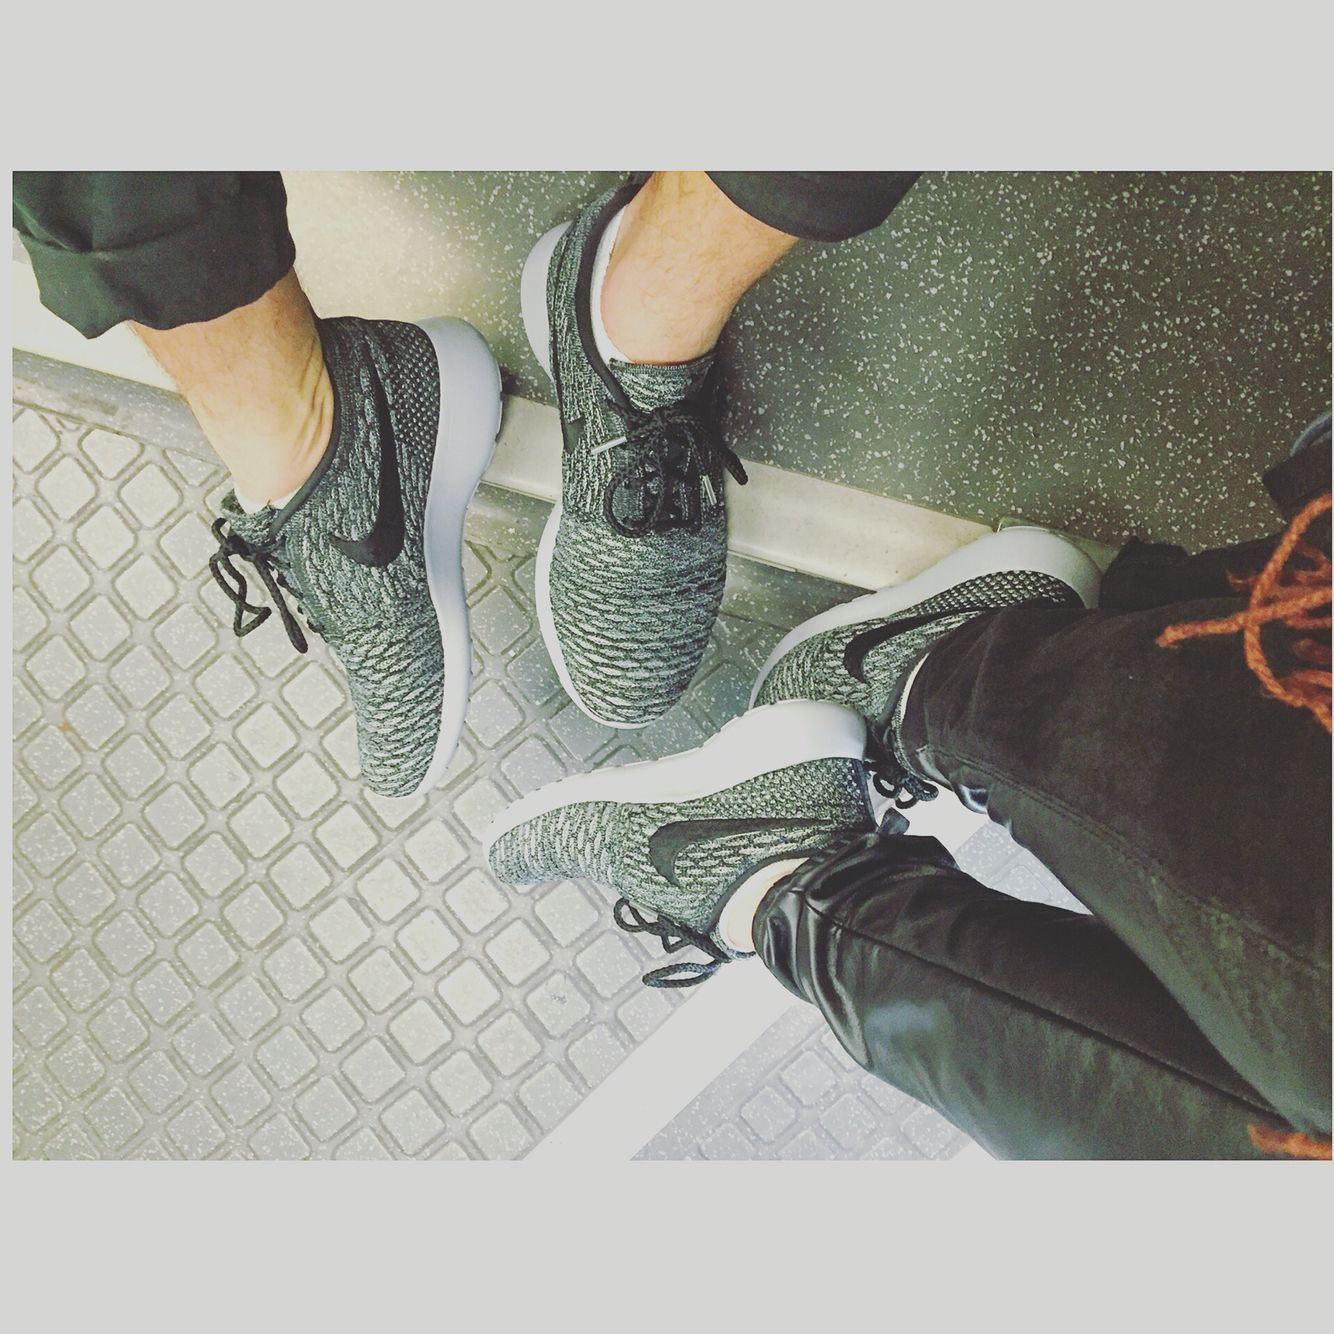 a9a3c29dac Couples matching Nikes! Matching Shoes For Couples